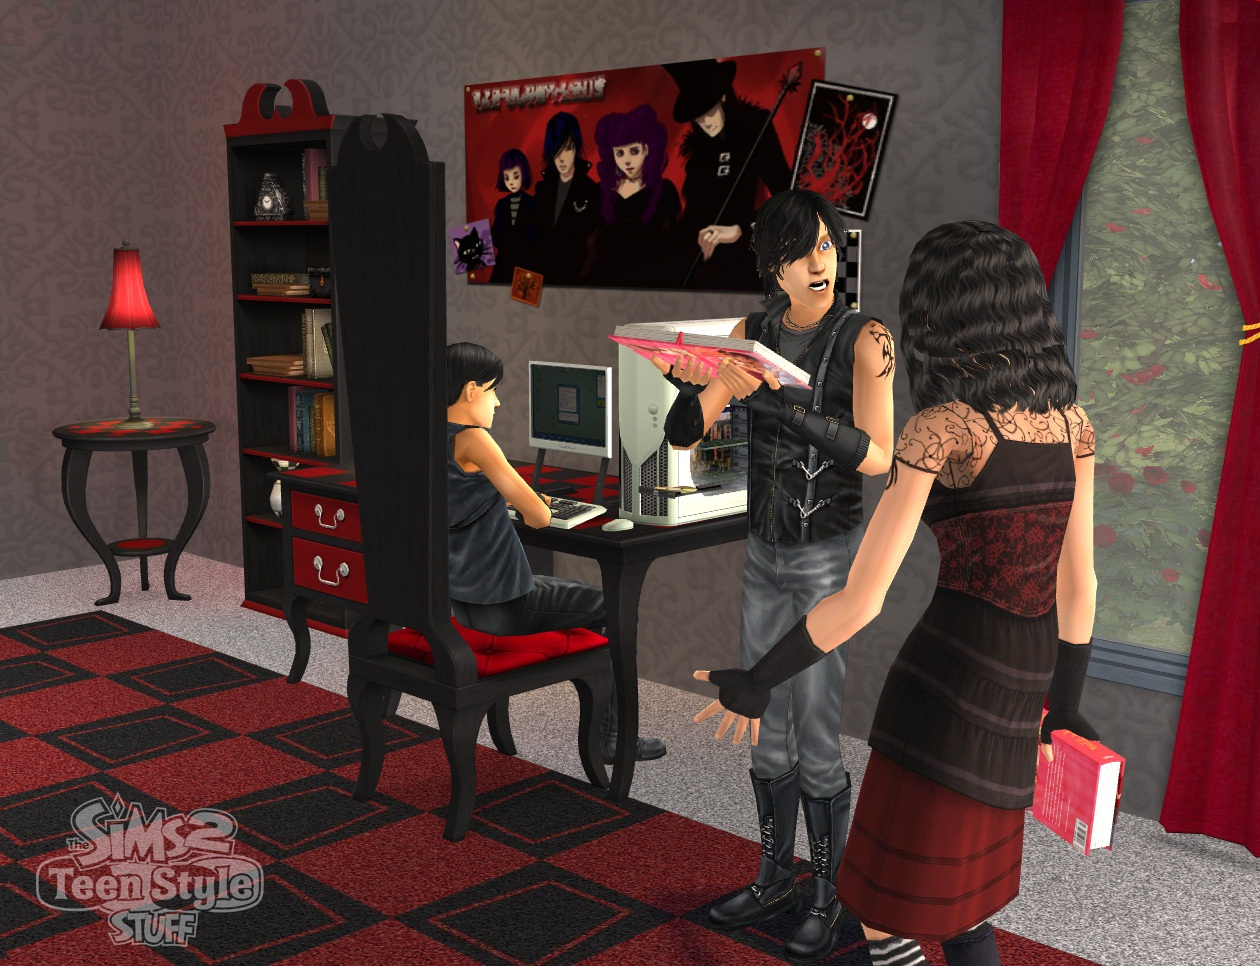 Large penis sims2 download exploited stupid girls